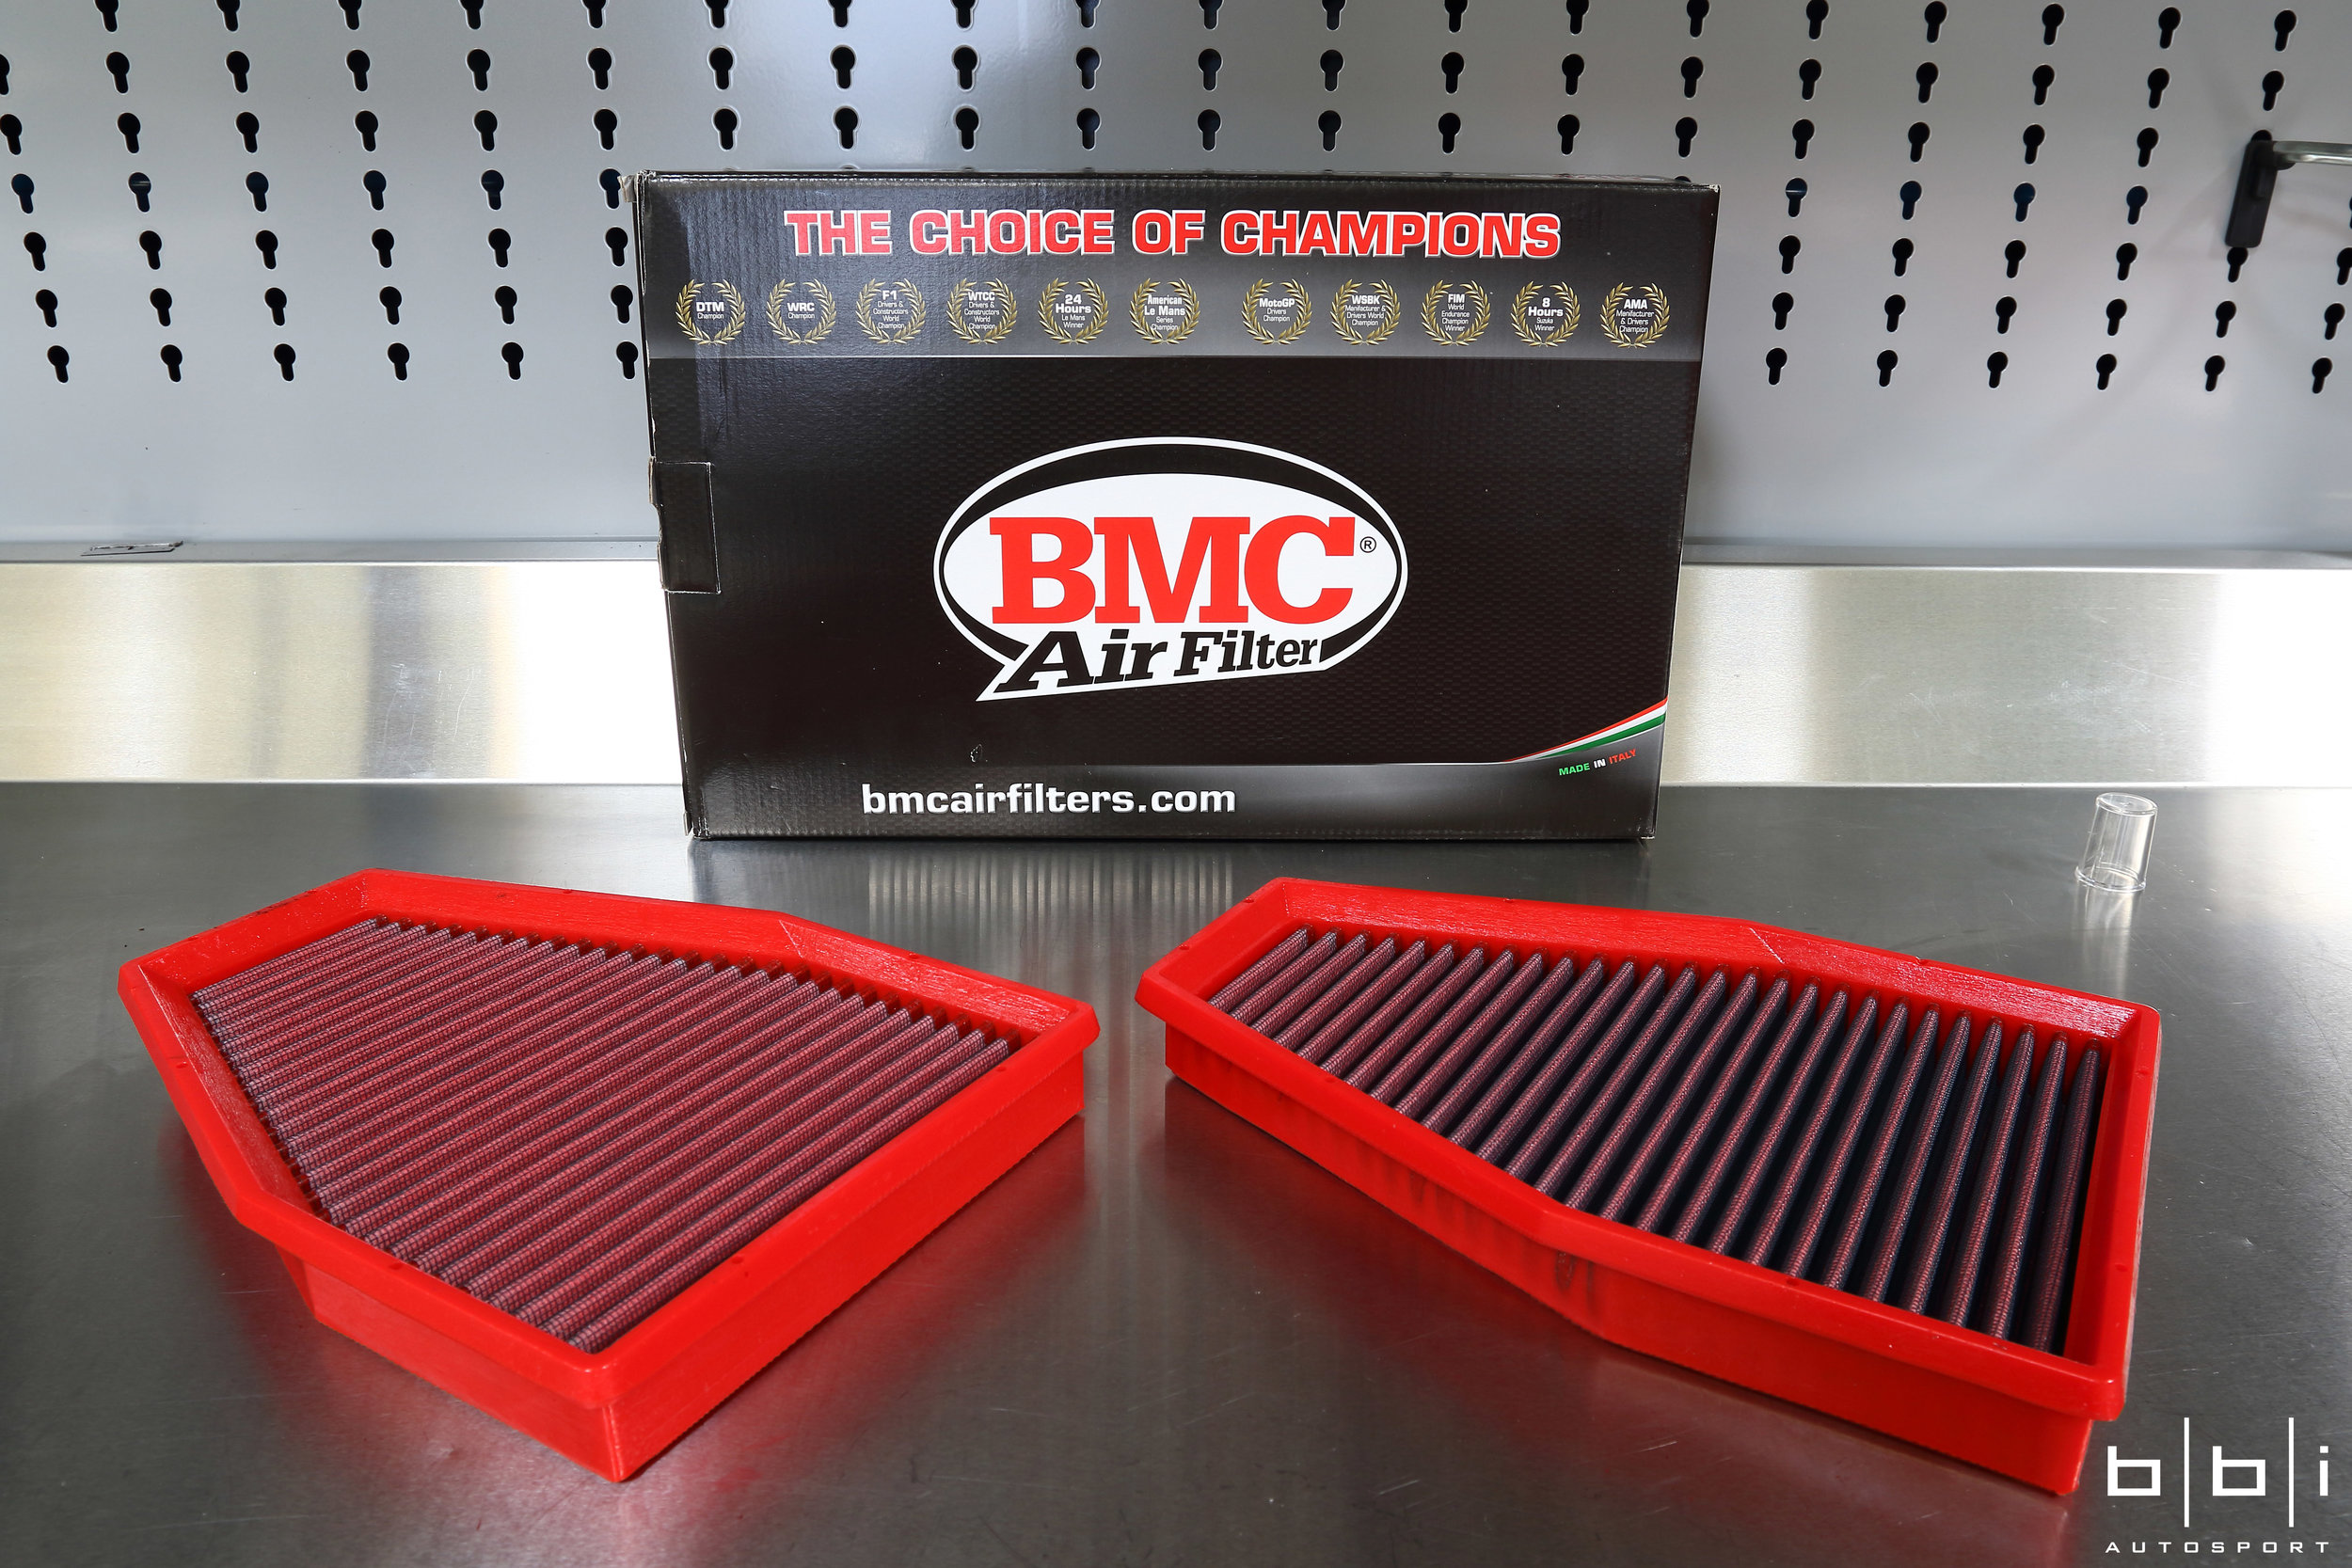 To help the engine breathe a little easier, we upgraded to the BMC F1 Replacement Air Filter. Compared to the restrictive factory filter, itis made of a washable cotton material that provides nearly 40% greater airflow than paper, enclosed in an alloy mesh screen which helps the filter keep its shape and protects against larger debris and dirt. The increased flow of air through the filter provides a steady stream of clean air to the engine, resulting in much more consistent and efficient power.